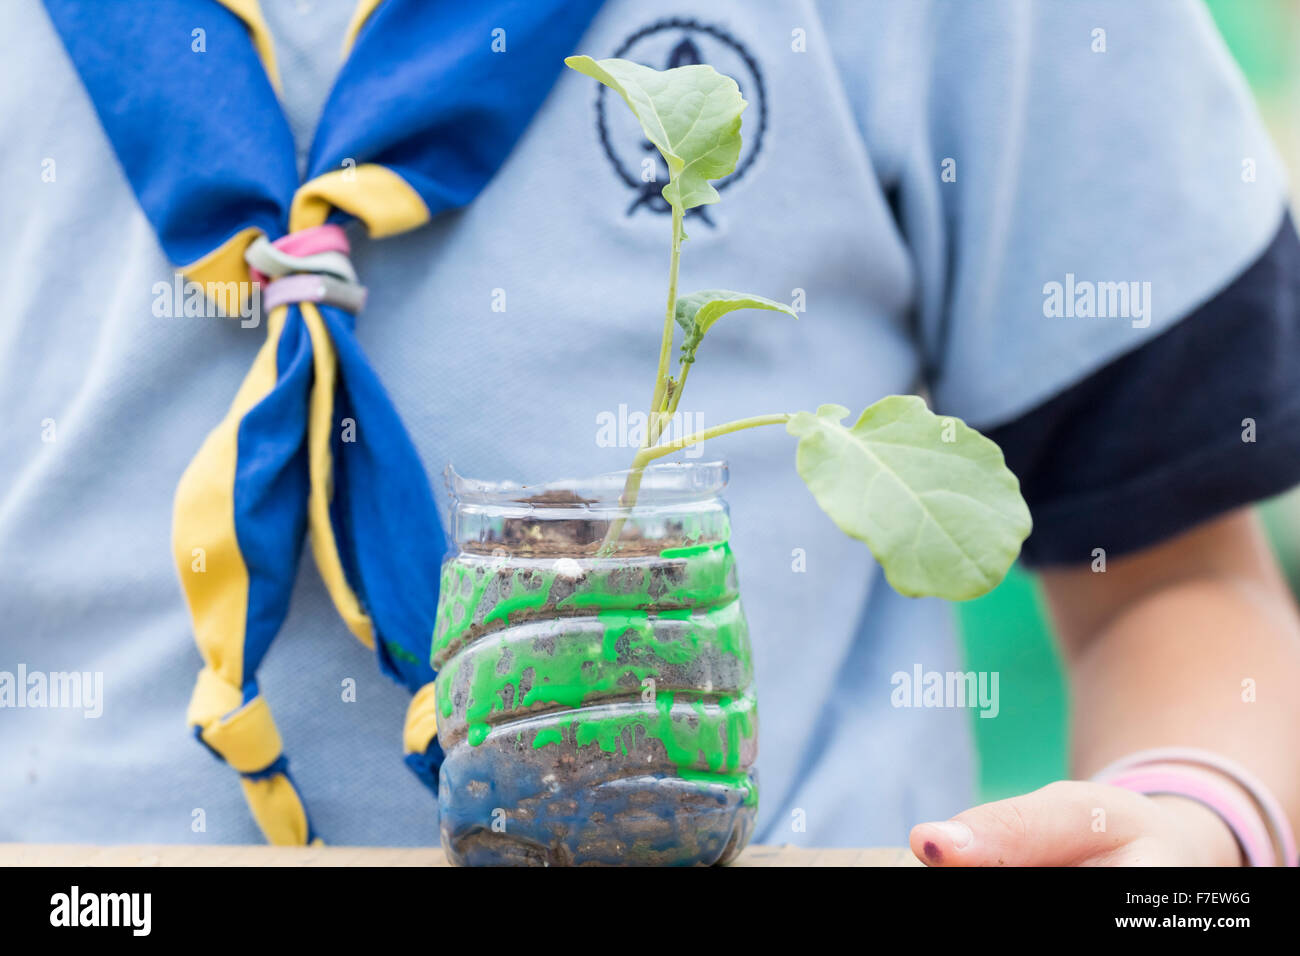 Spanish Scout potting cuttings at climate change awareness event in Spain - Stock Image